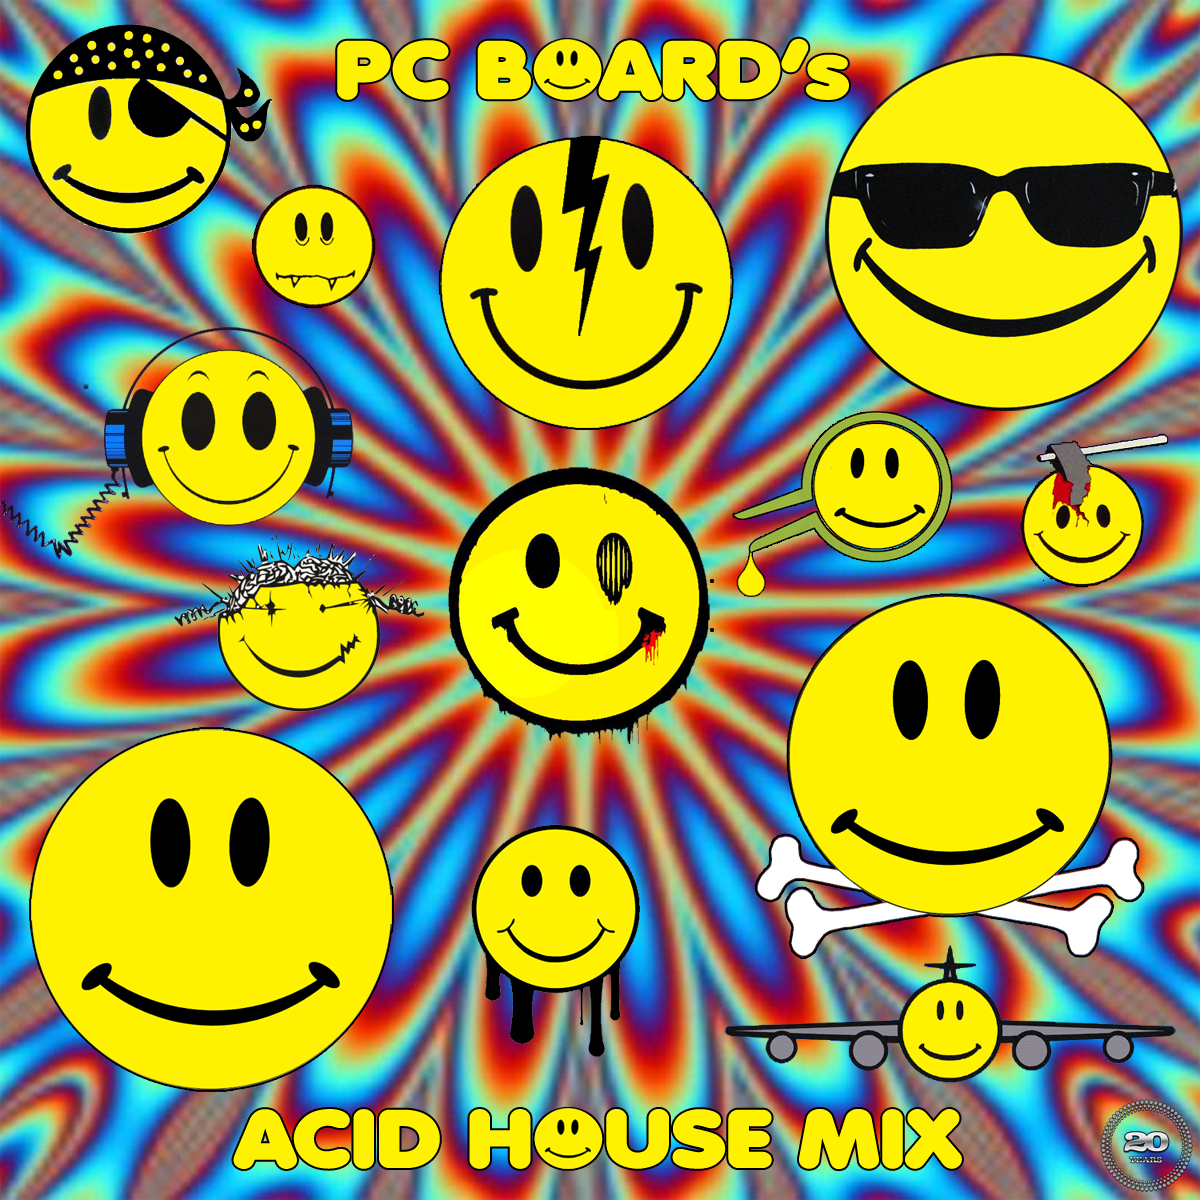 Dj pc board dj pc board acid house mix for Acid house 90s